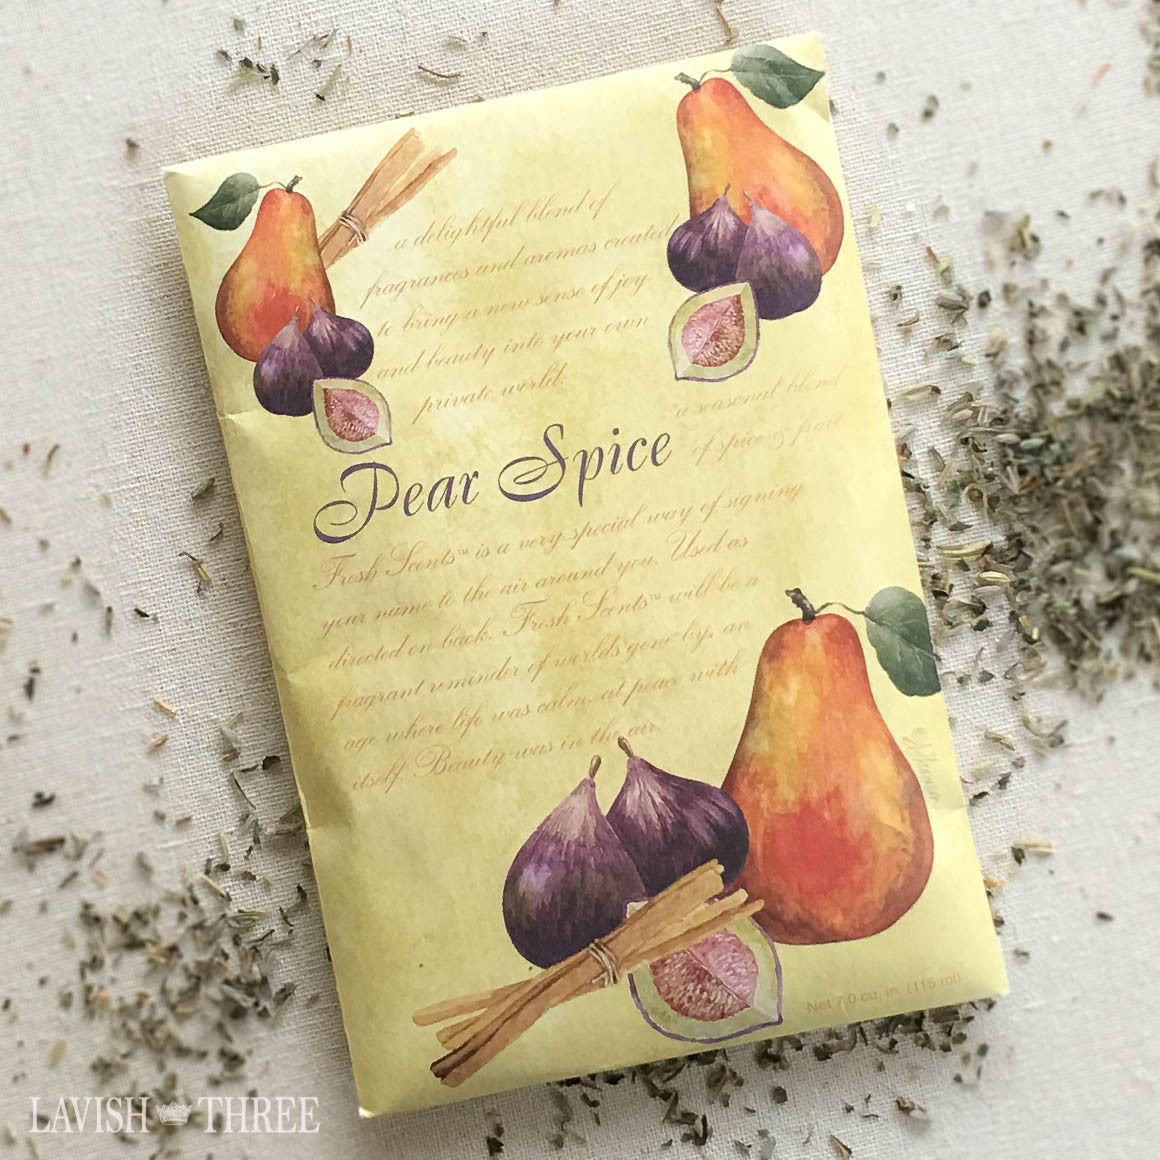 Sachet Pear Spice Scent Lavish three 3